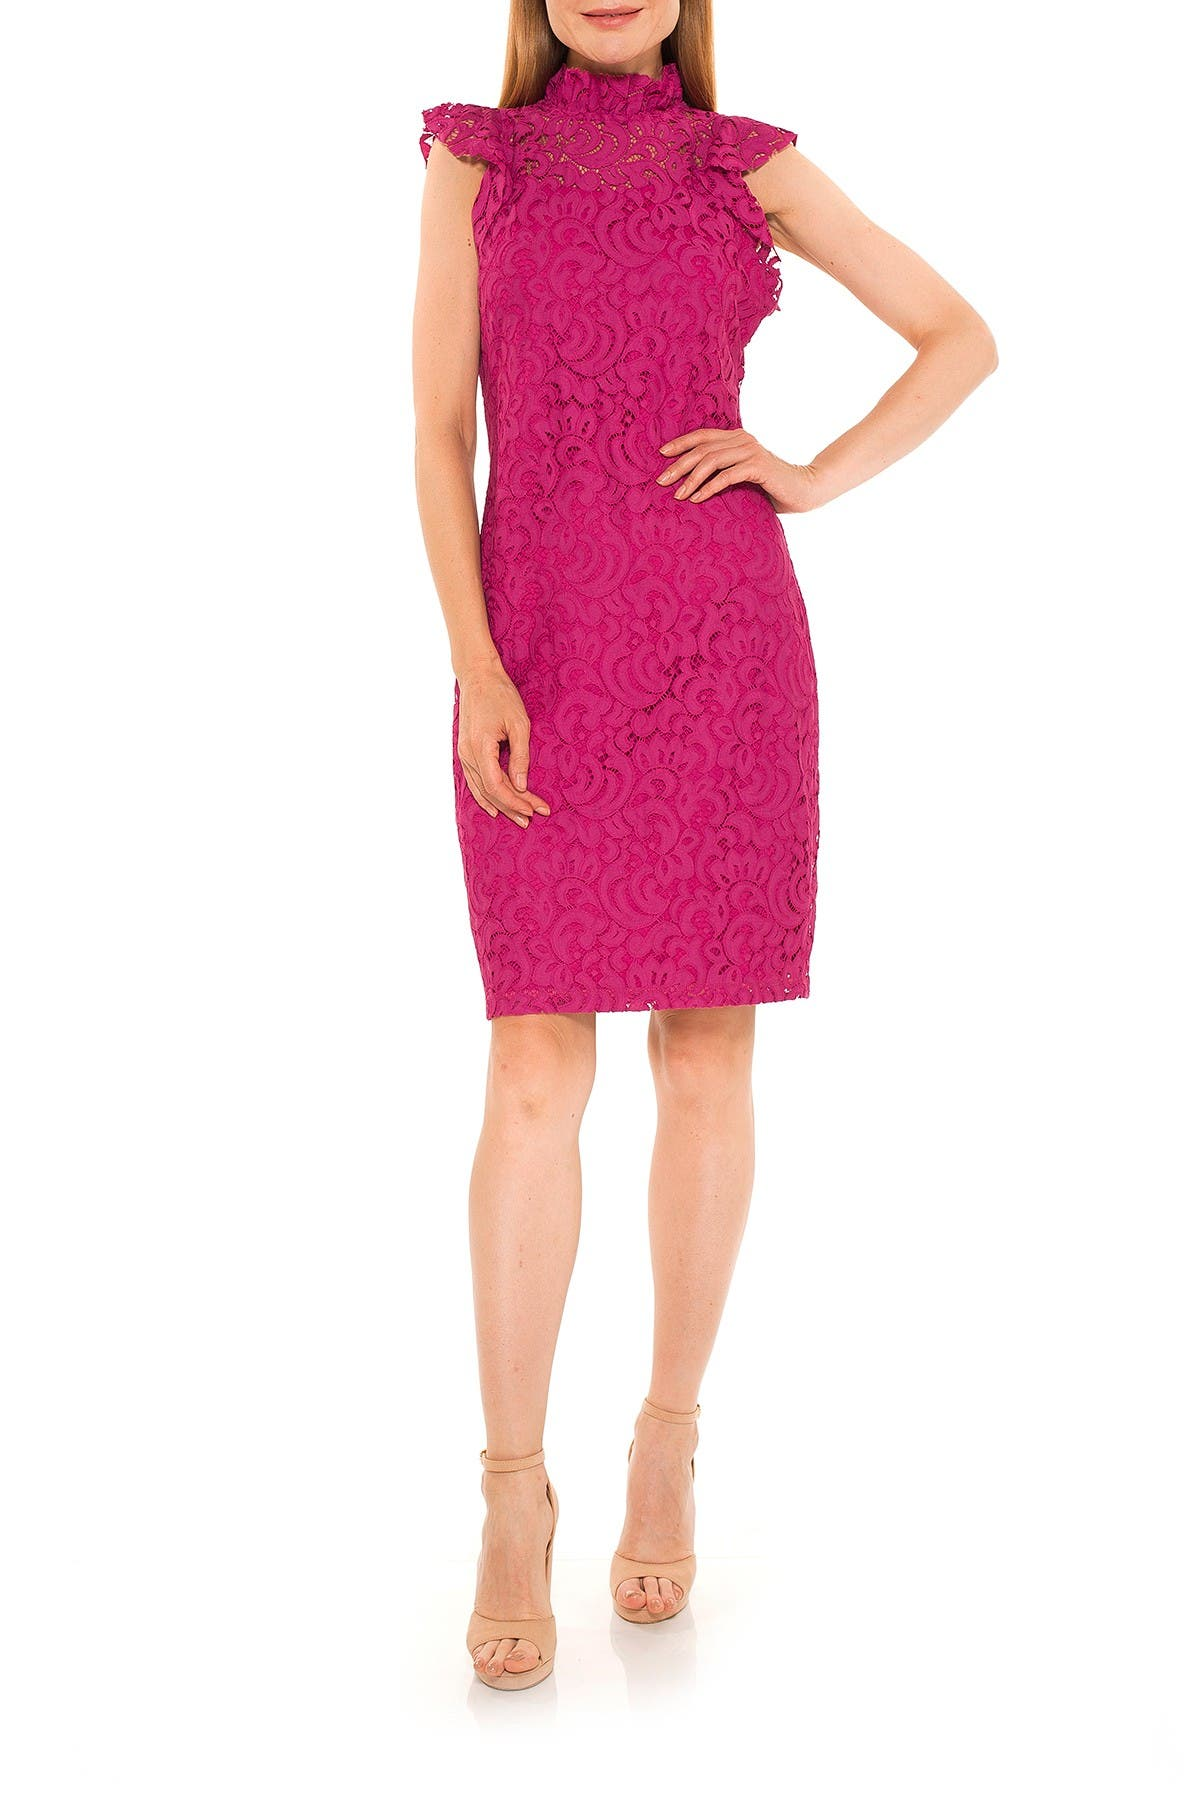 Image of Alexia Admor Kendall Lace Cap Sleeve Sheath Dress